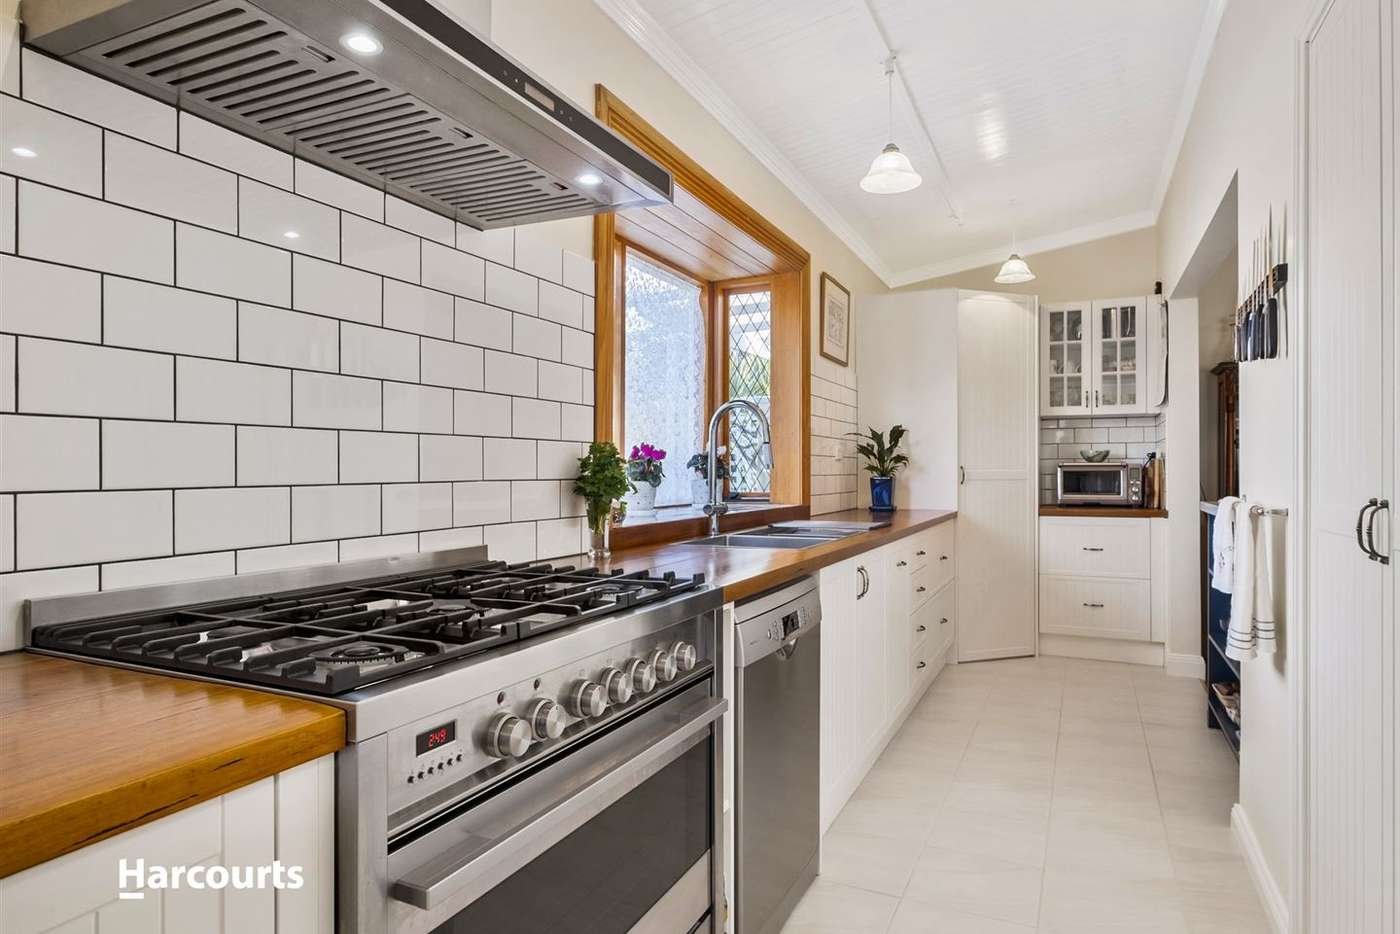 Fifth view of Homely house listing, 184 Main Street, Huonville TAS 7109